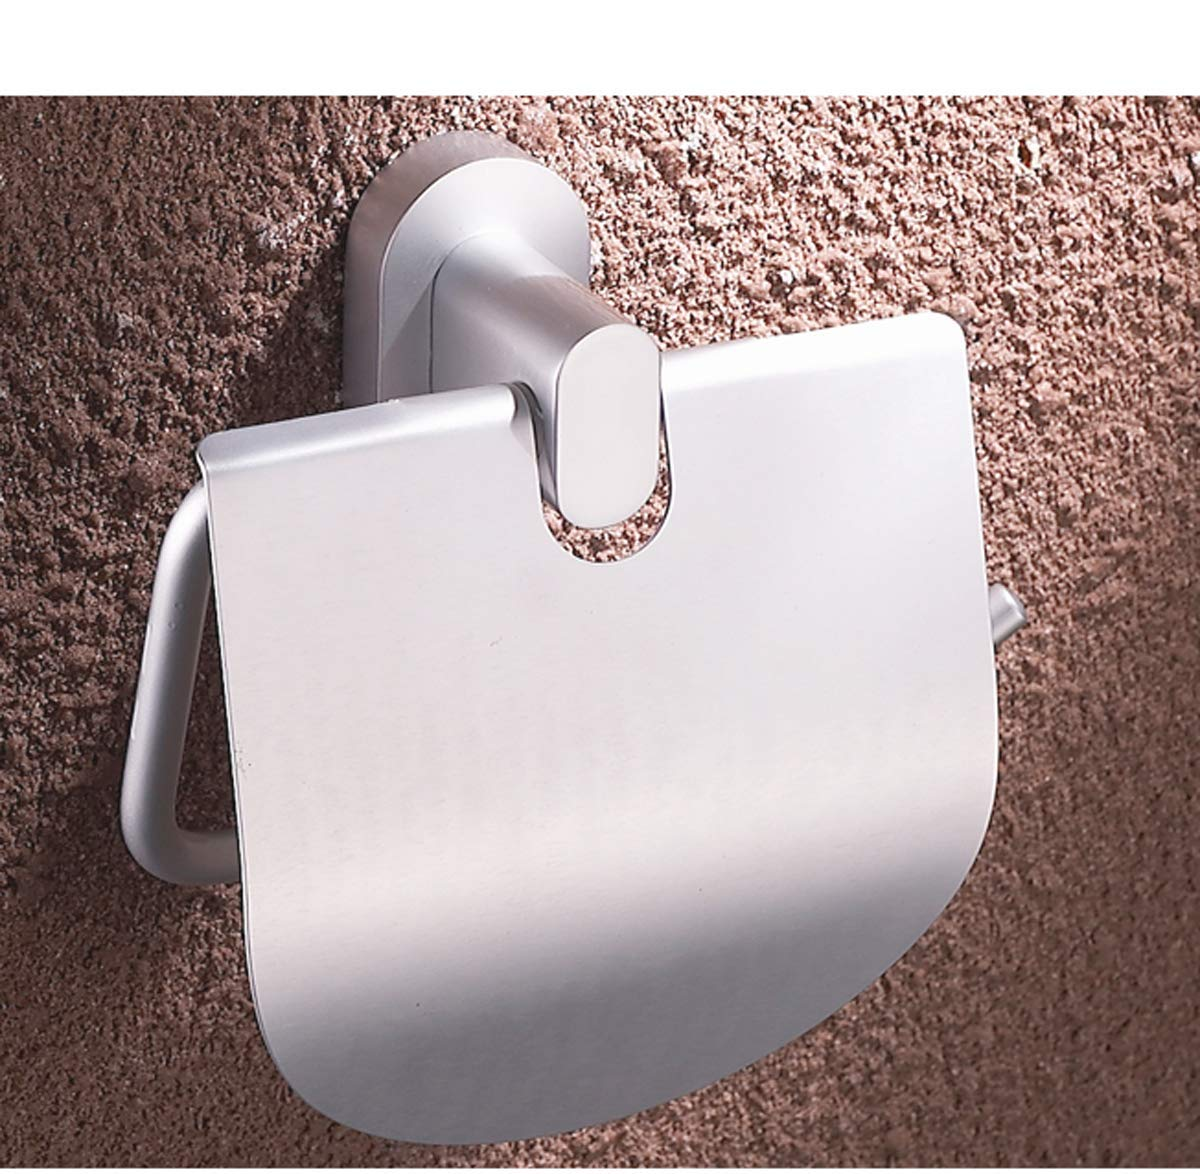 Q&F Toilet Paper Holder,Tissue Roll Hanger, Toilet Tissue Dispenser With cover- Wall Mount,Waterproof,Moisture Proof,Rust Protection,Aluminium-B